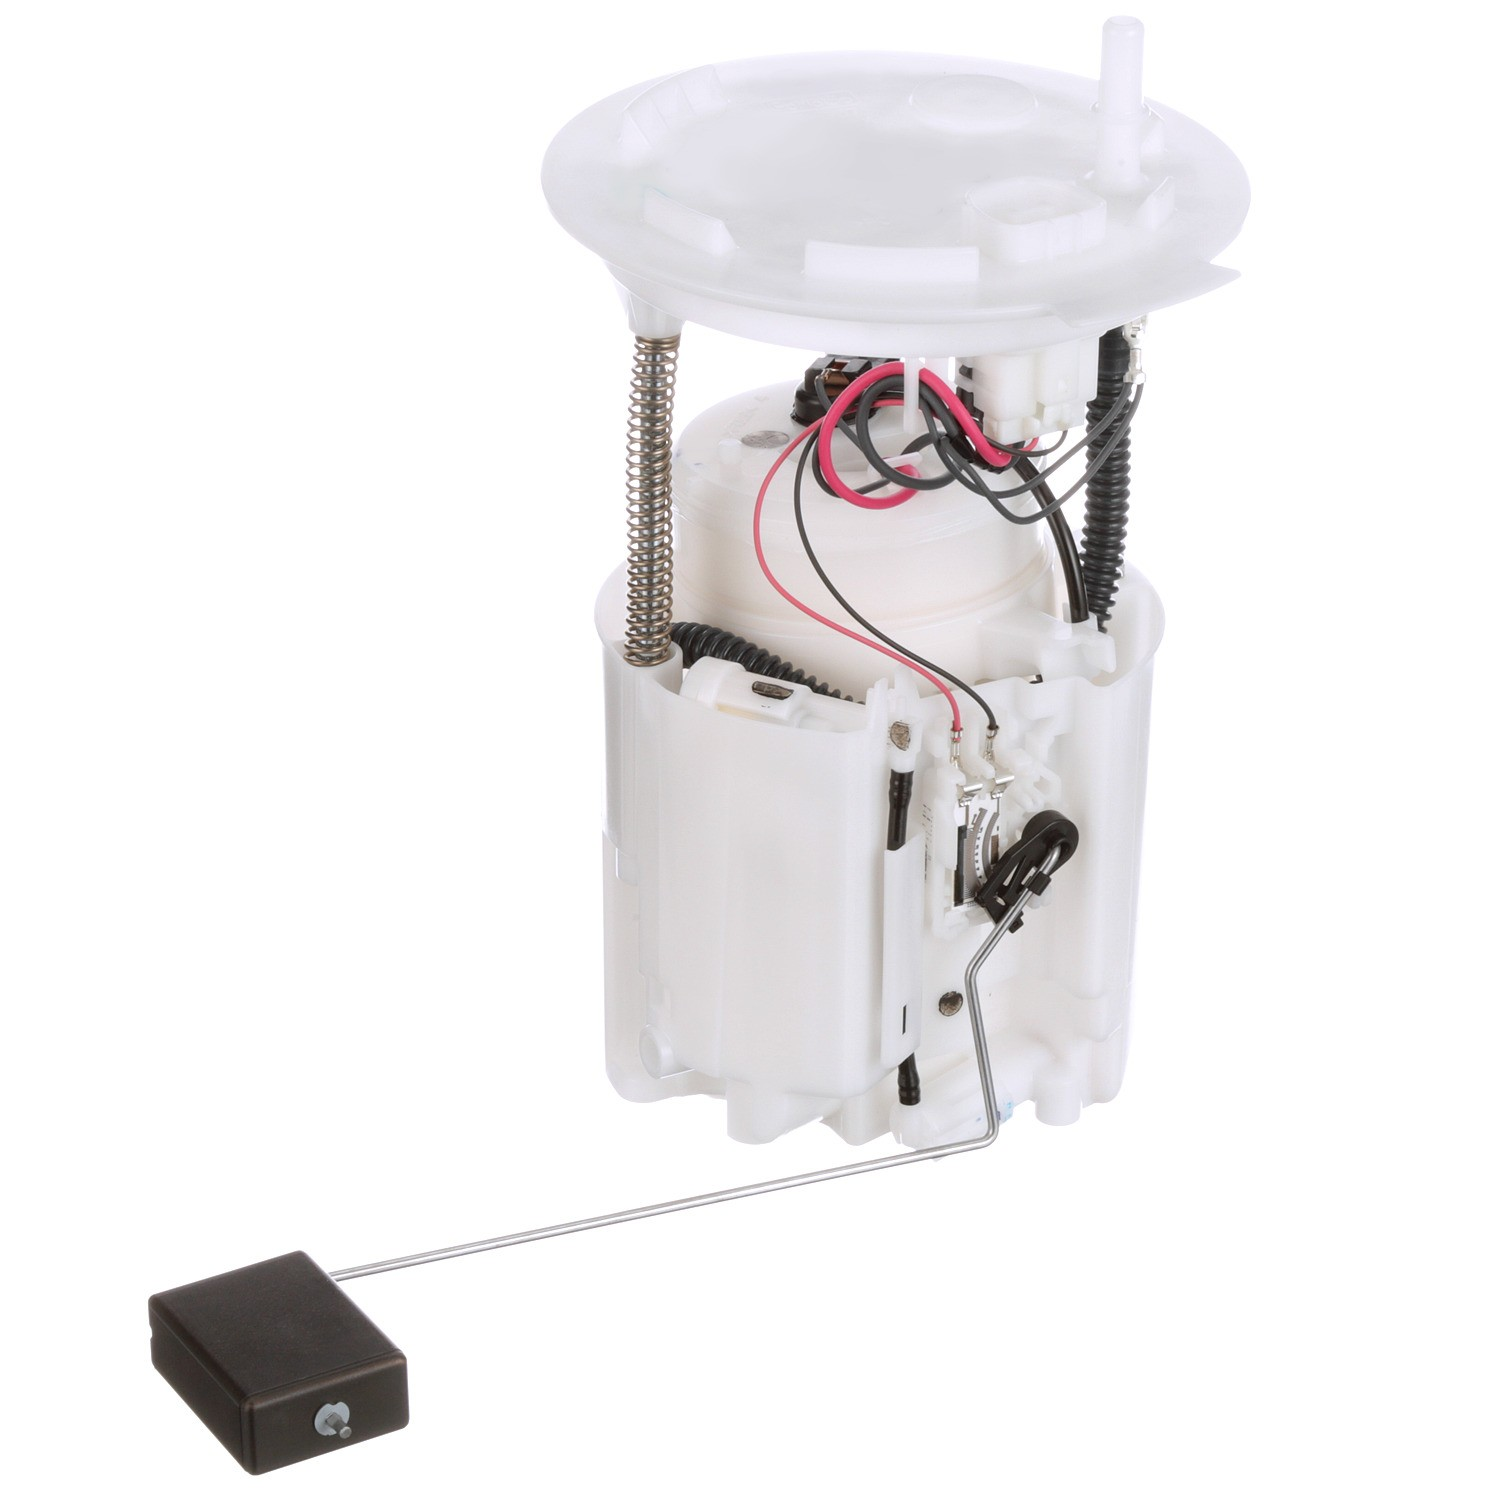 2015 ford edge fuel pump module assembly autopartskart com2015 ford edge fuel pump module assembly de fg2057